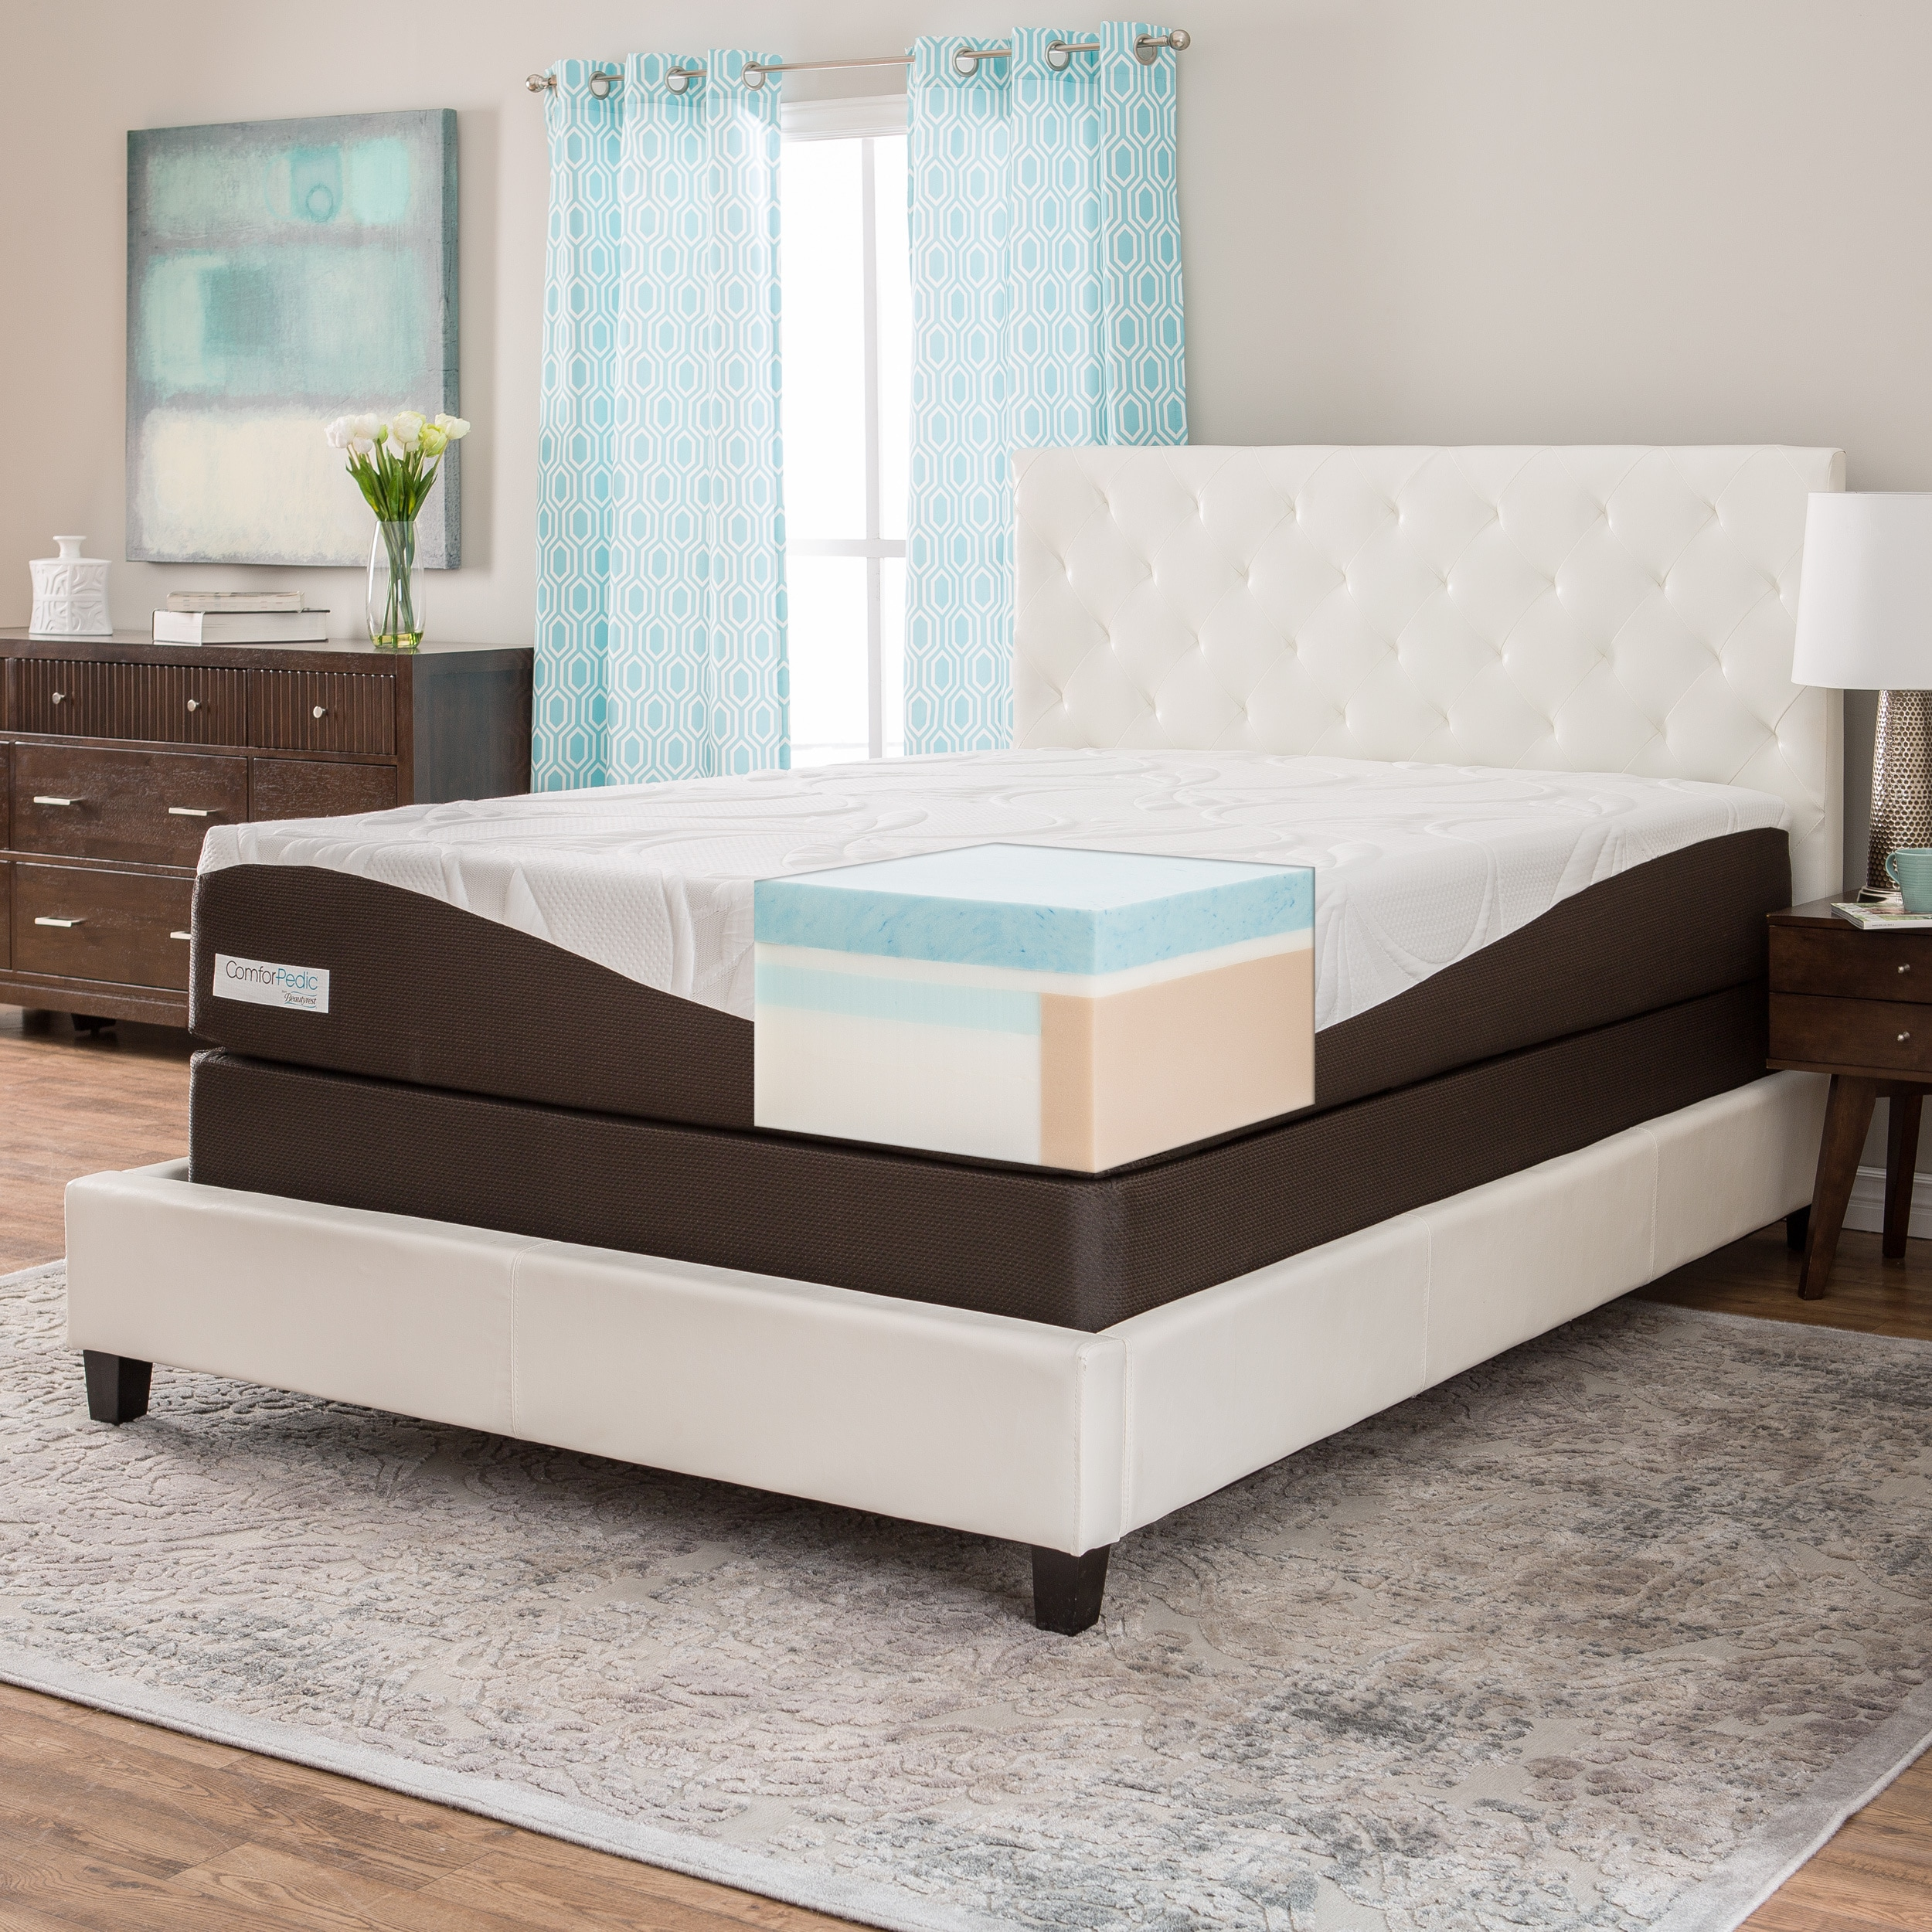 Simmons Beautyrest ComforPedic from Beautyrest 12-inch King-size Gel Memory Foam Mattress Set by Overstock